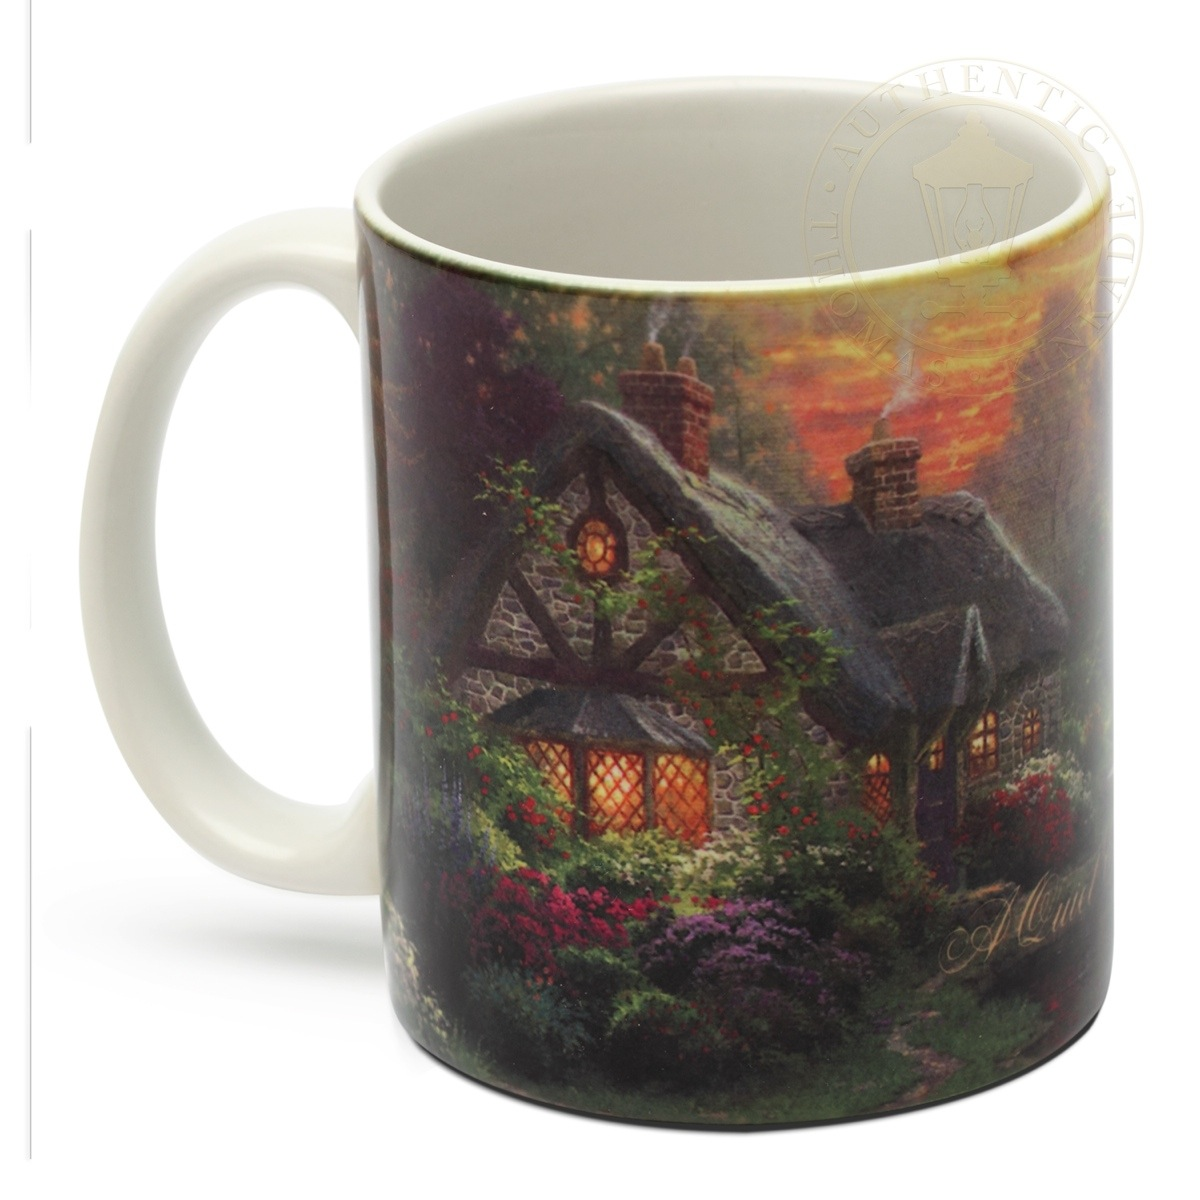 Quiet Evening A Ceramic Mug Thomas Kinkade Studios